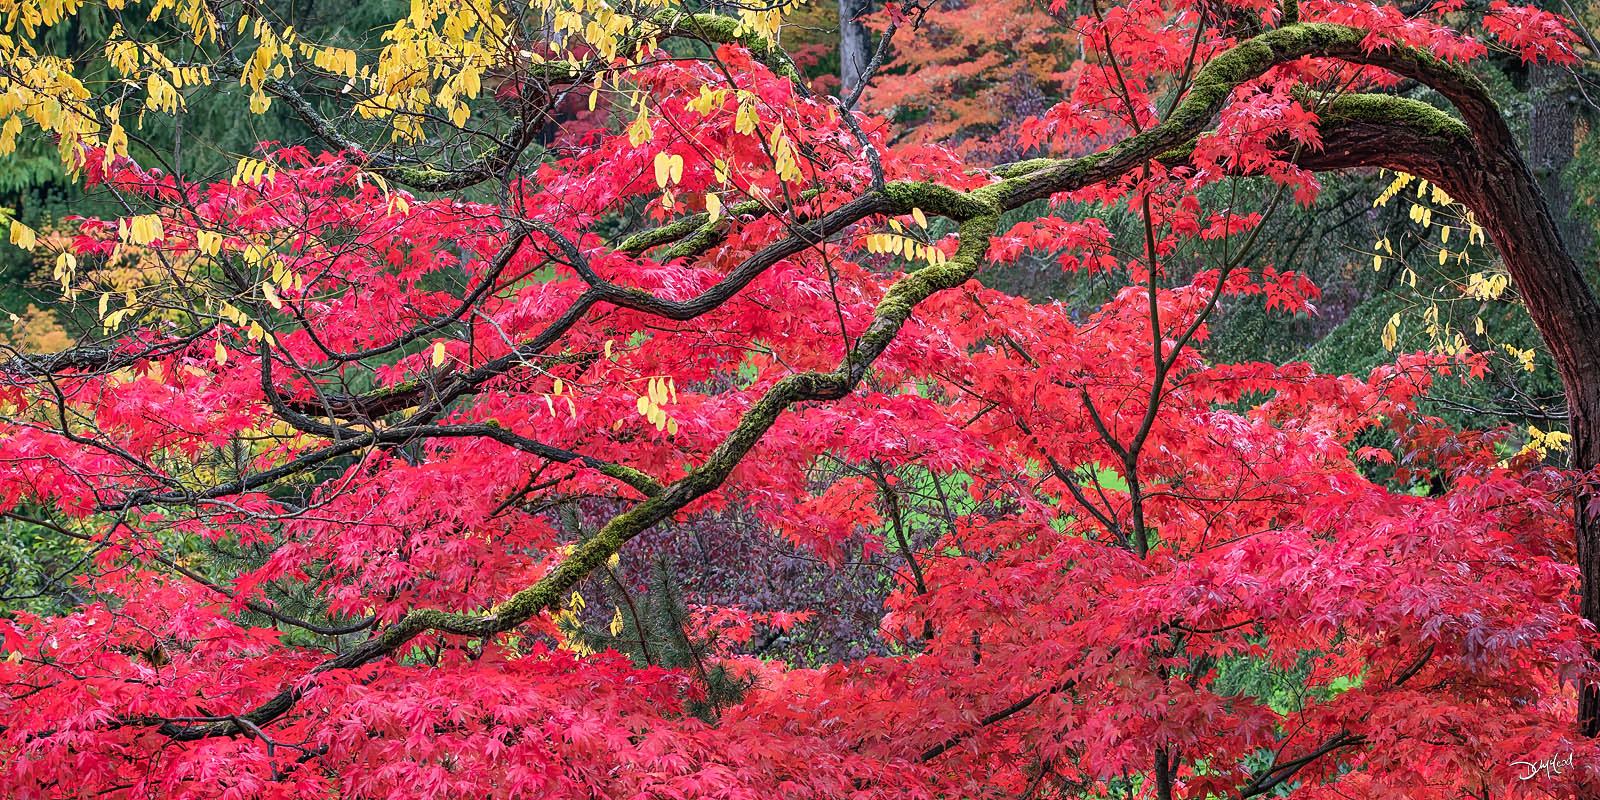 Detailed view of a Japanese maple tree branch in autumn with bright red foliage at Butchart Gardens in British Columbia.